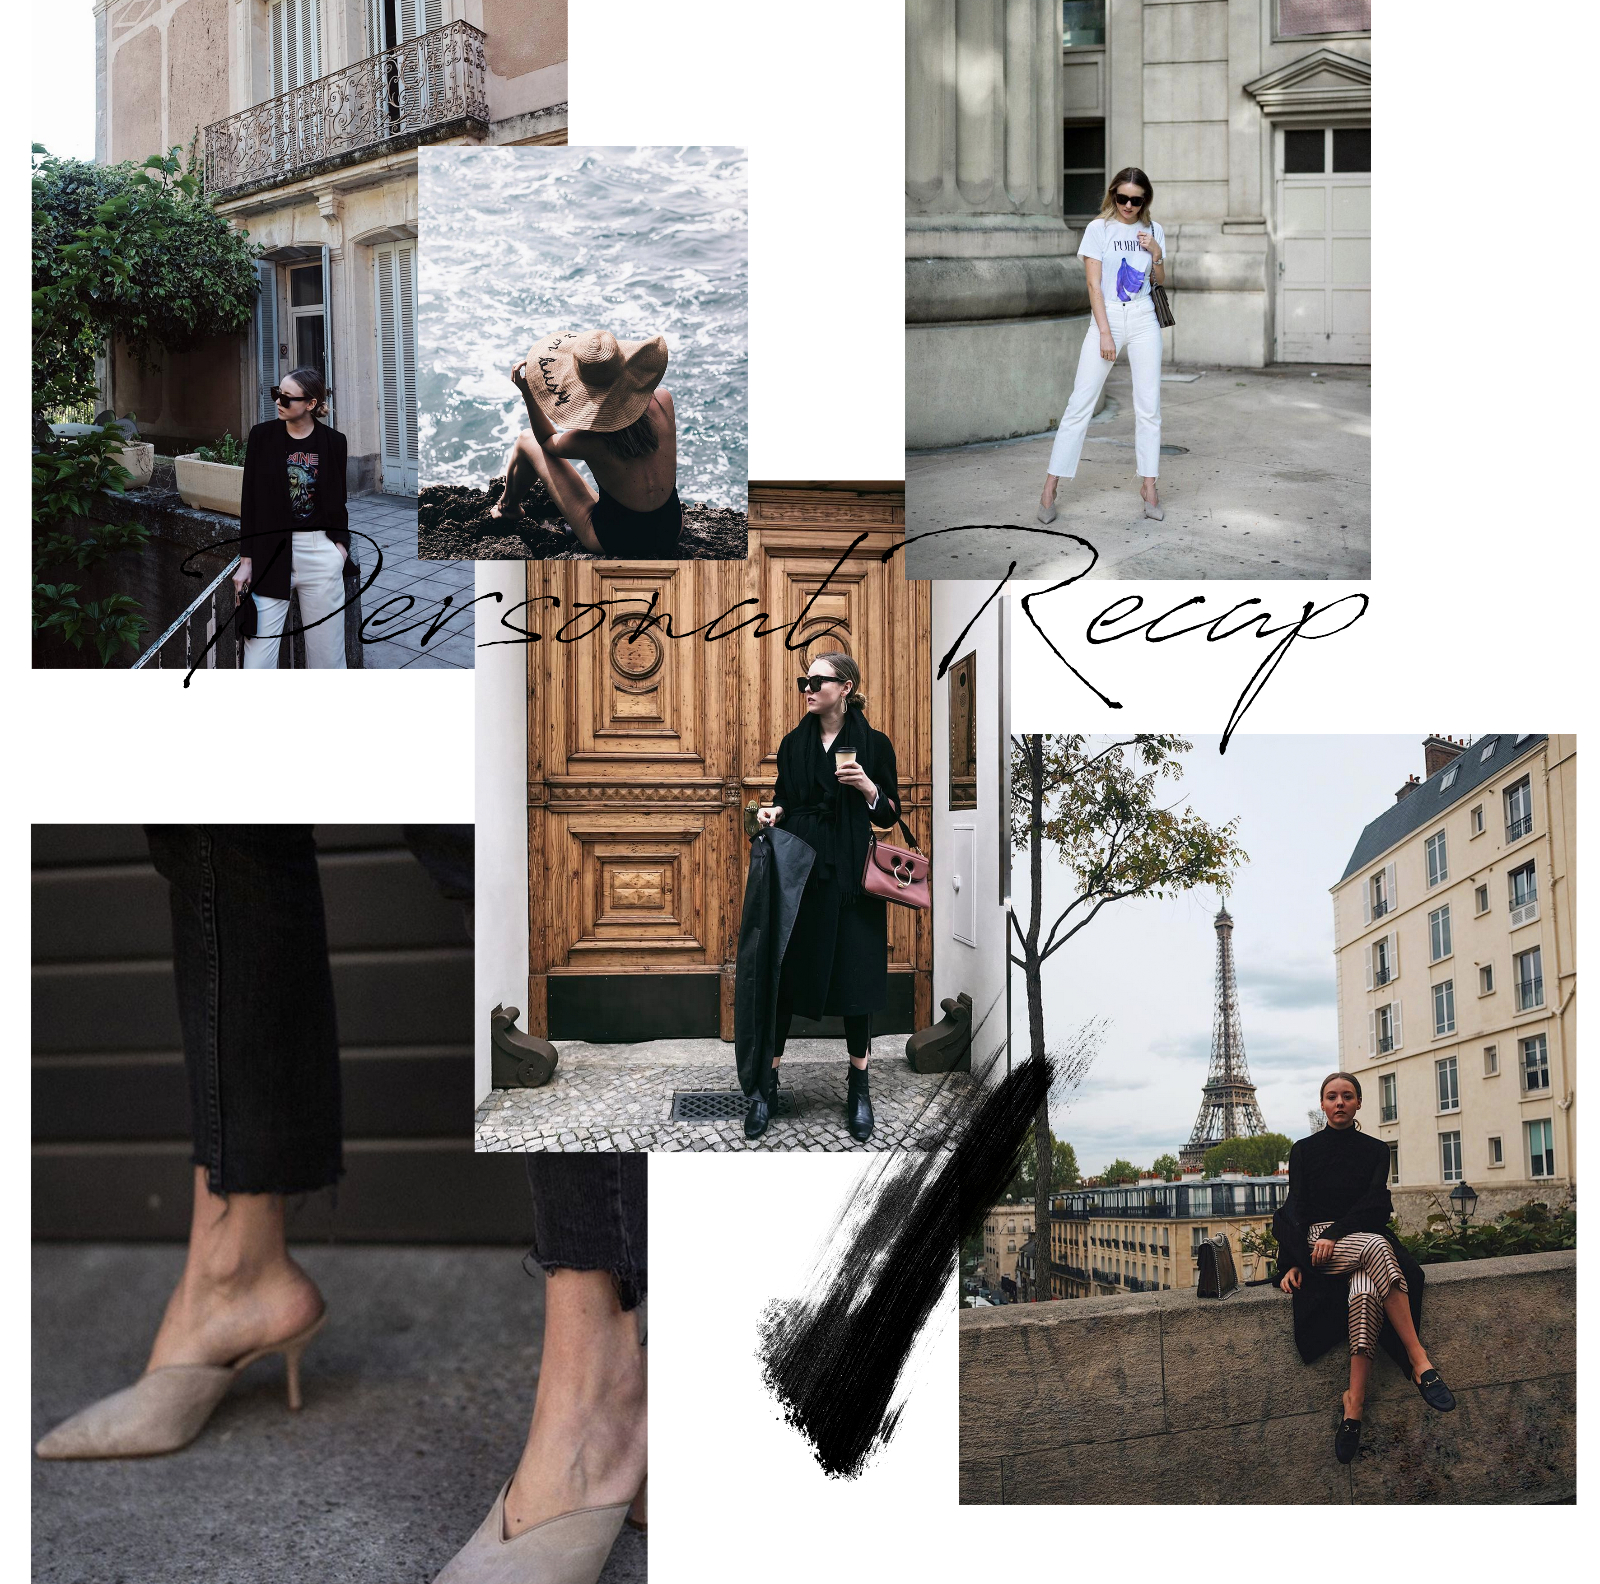 Instagram_Recap_Personal_The-Limits-of-Control-Fashion-Fashionblogger-Blogger-Berlin-Deutschland-Modeblog-Modeblogger